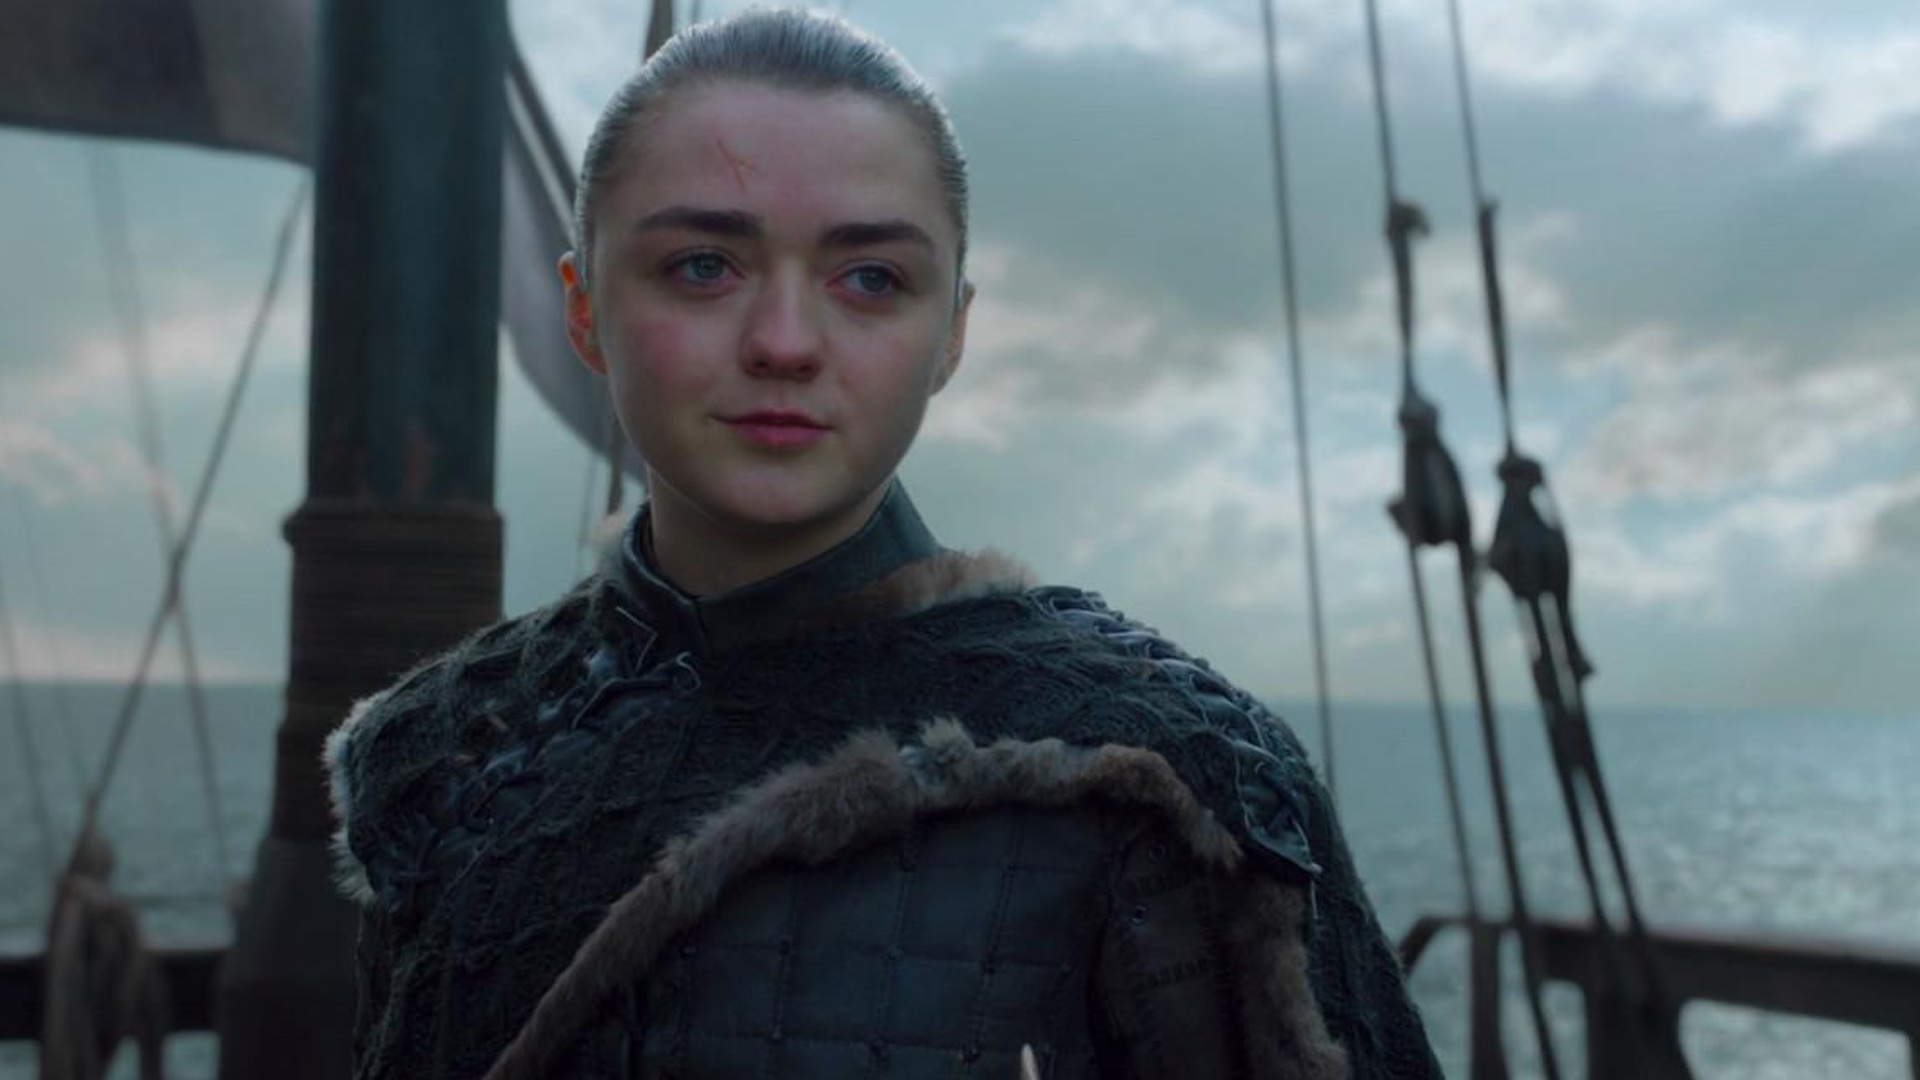 hbo-exec-addresses-game-of-thrones-finale-fan-backlash-and-says-there-will-be-no-arya-spinoff-social.jpg